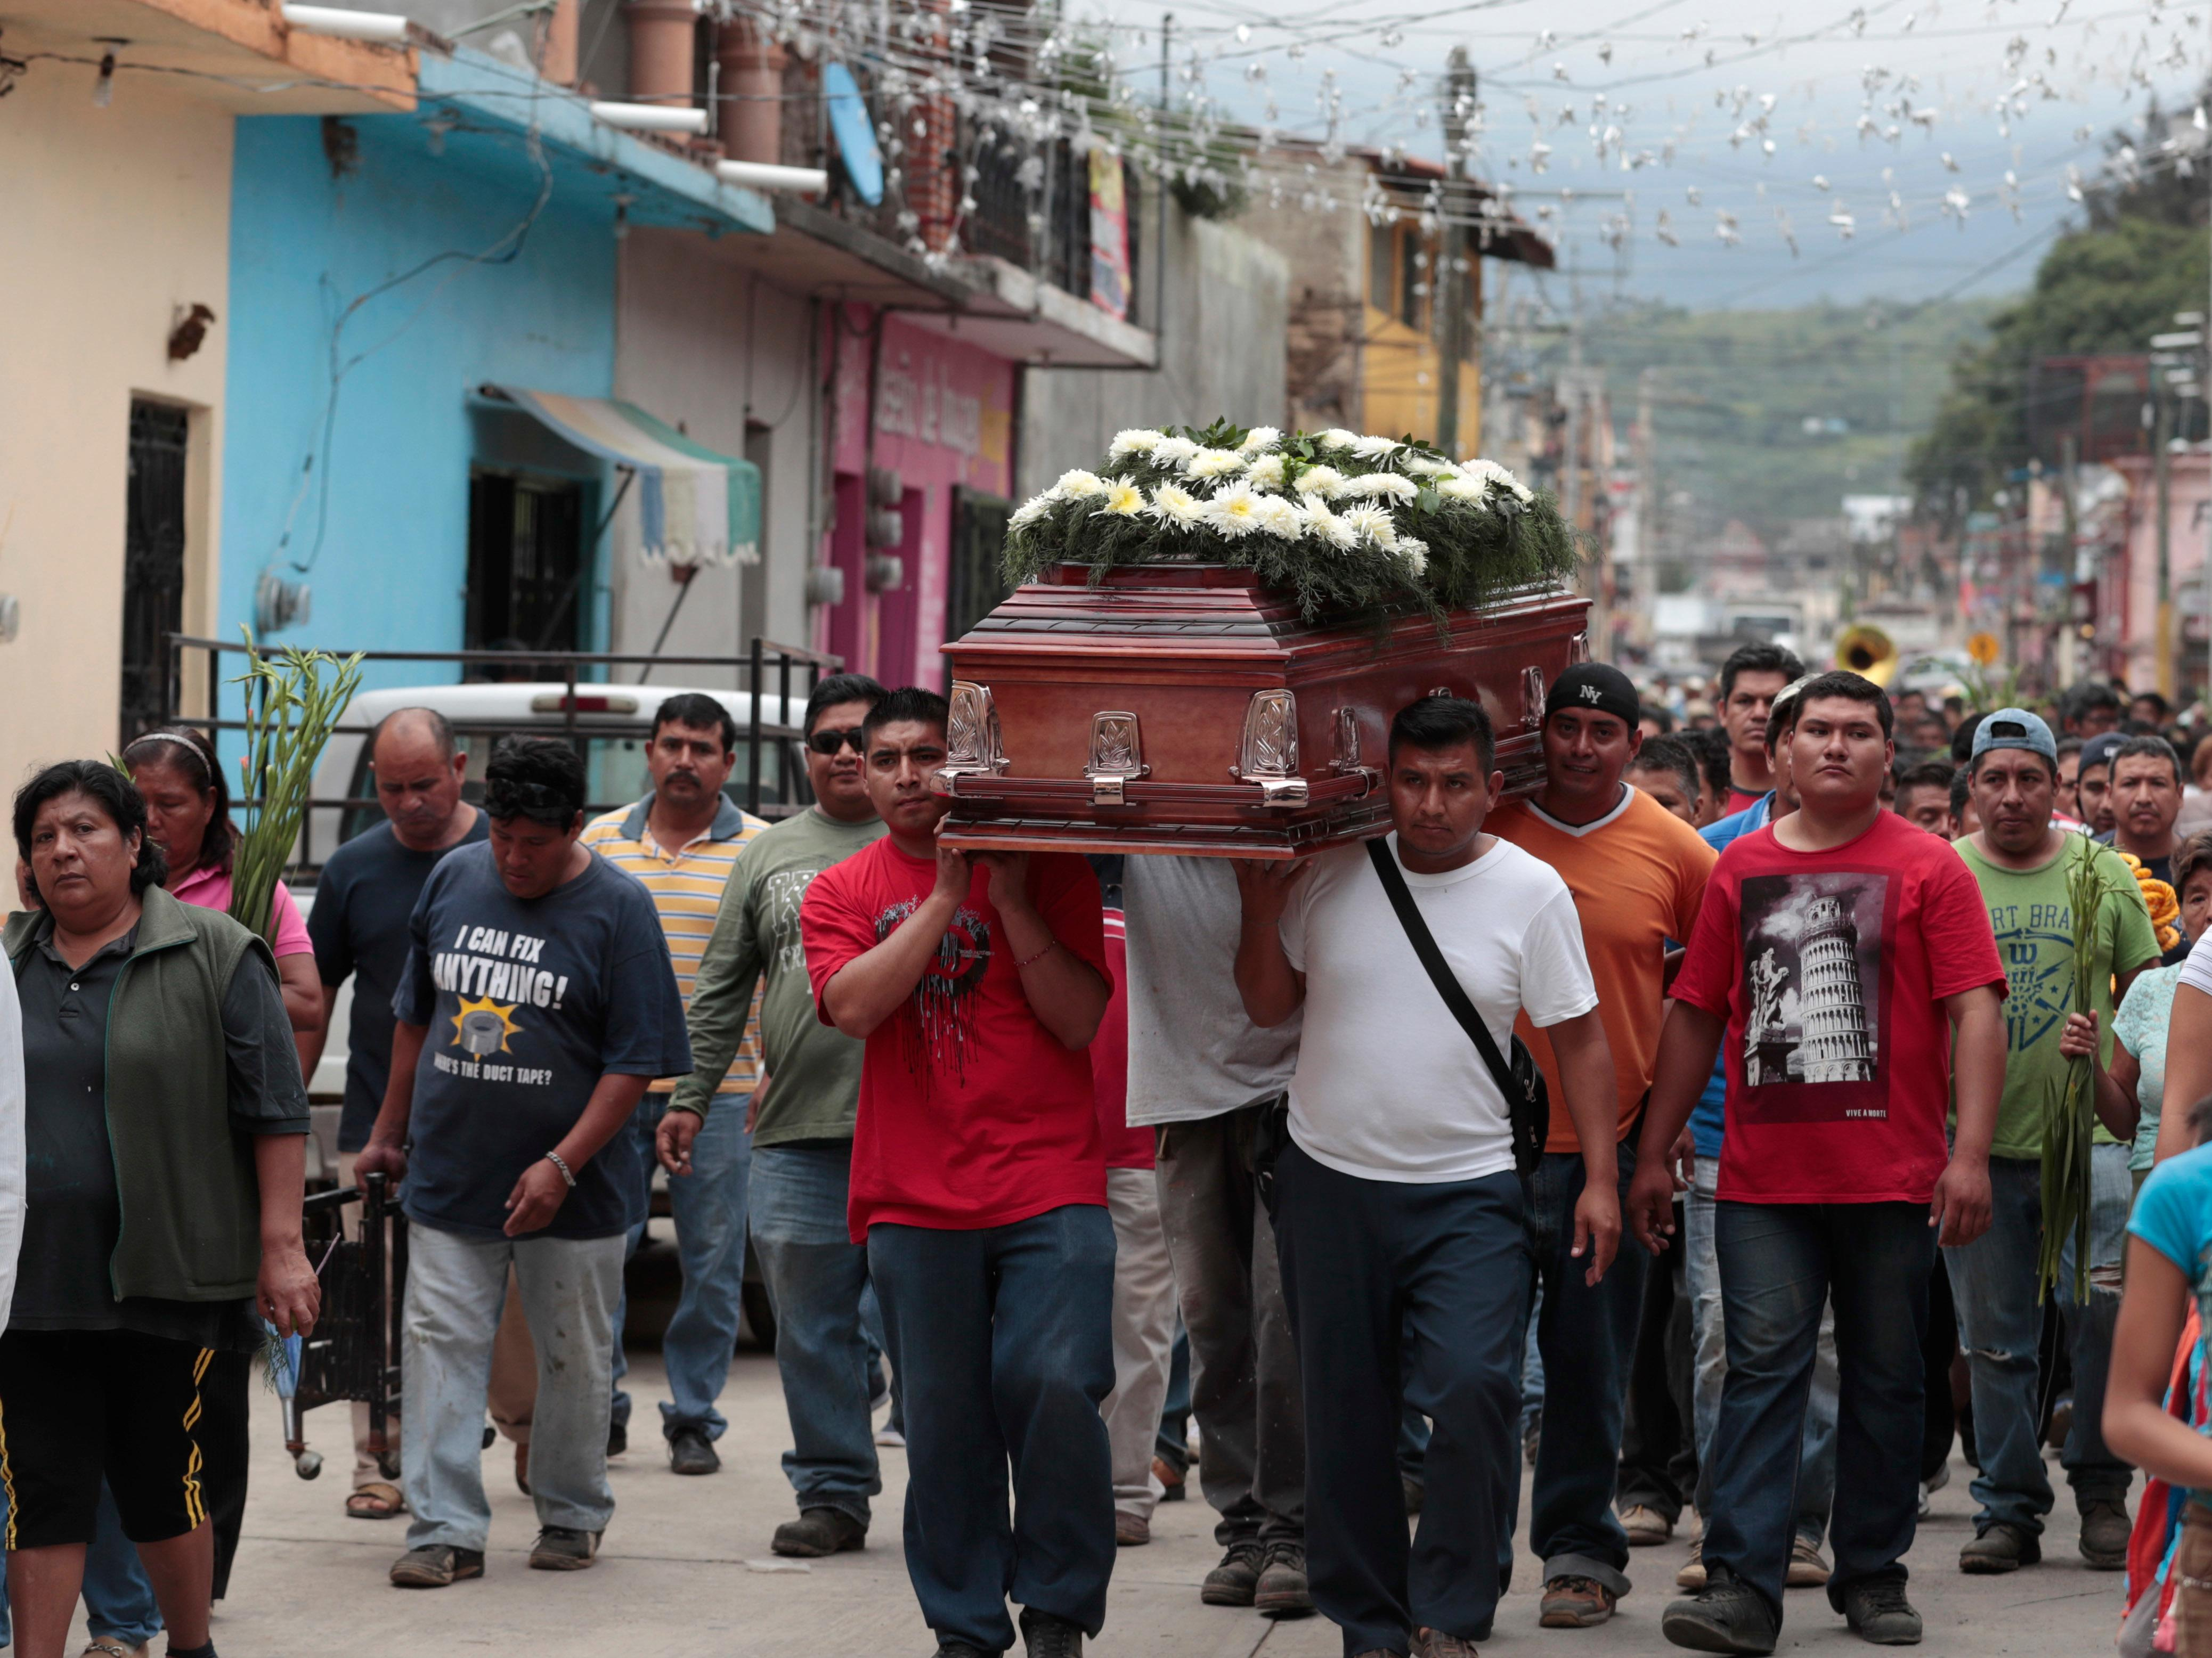 Locals carry the casket of a woman who died in Tuesday's earthquake, in Tlayacapan, Morelos state, Mexico, Wednesday, Sept. 20, 2017. People by the millions rushed from homes and offices across central Mexico after a 7.1 earthquake, sometimes watching as buildings they had just fled fell behind them with an eruption of dust and debris. (AP Photo/Eduardo Verdugo)